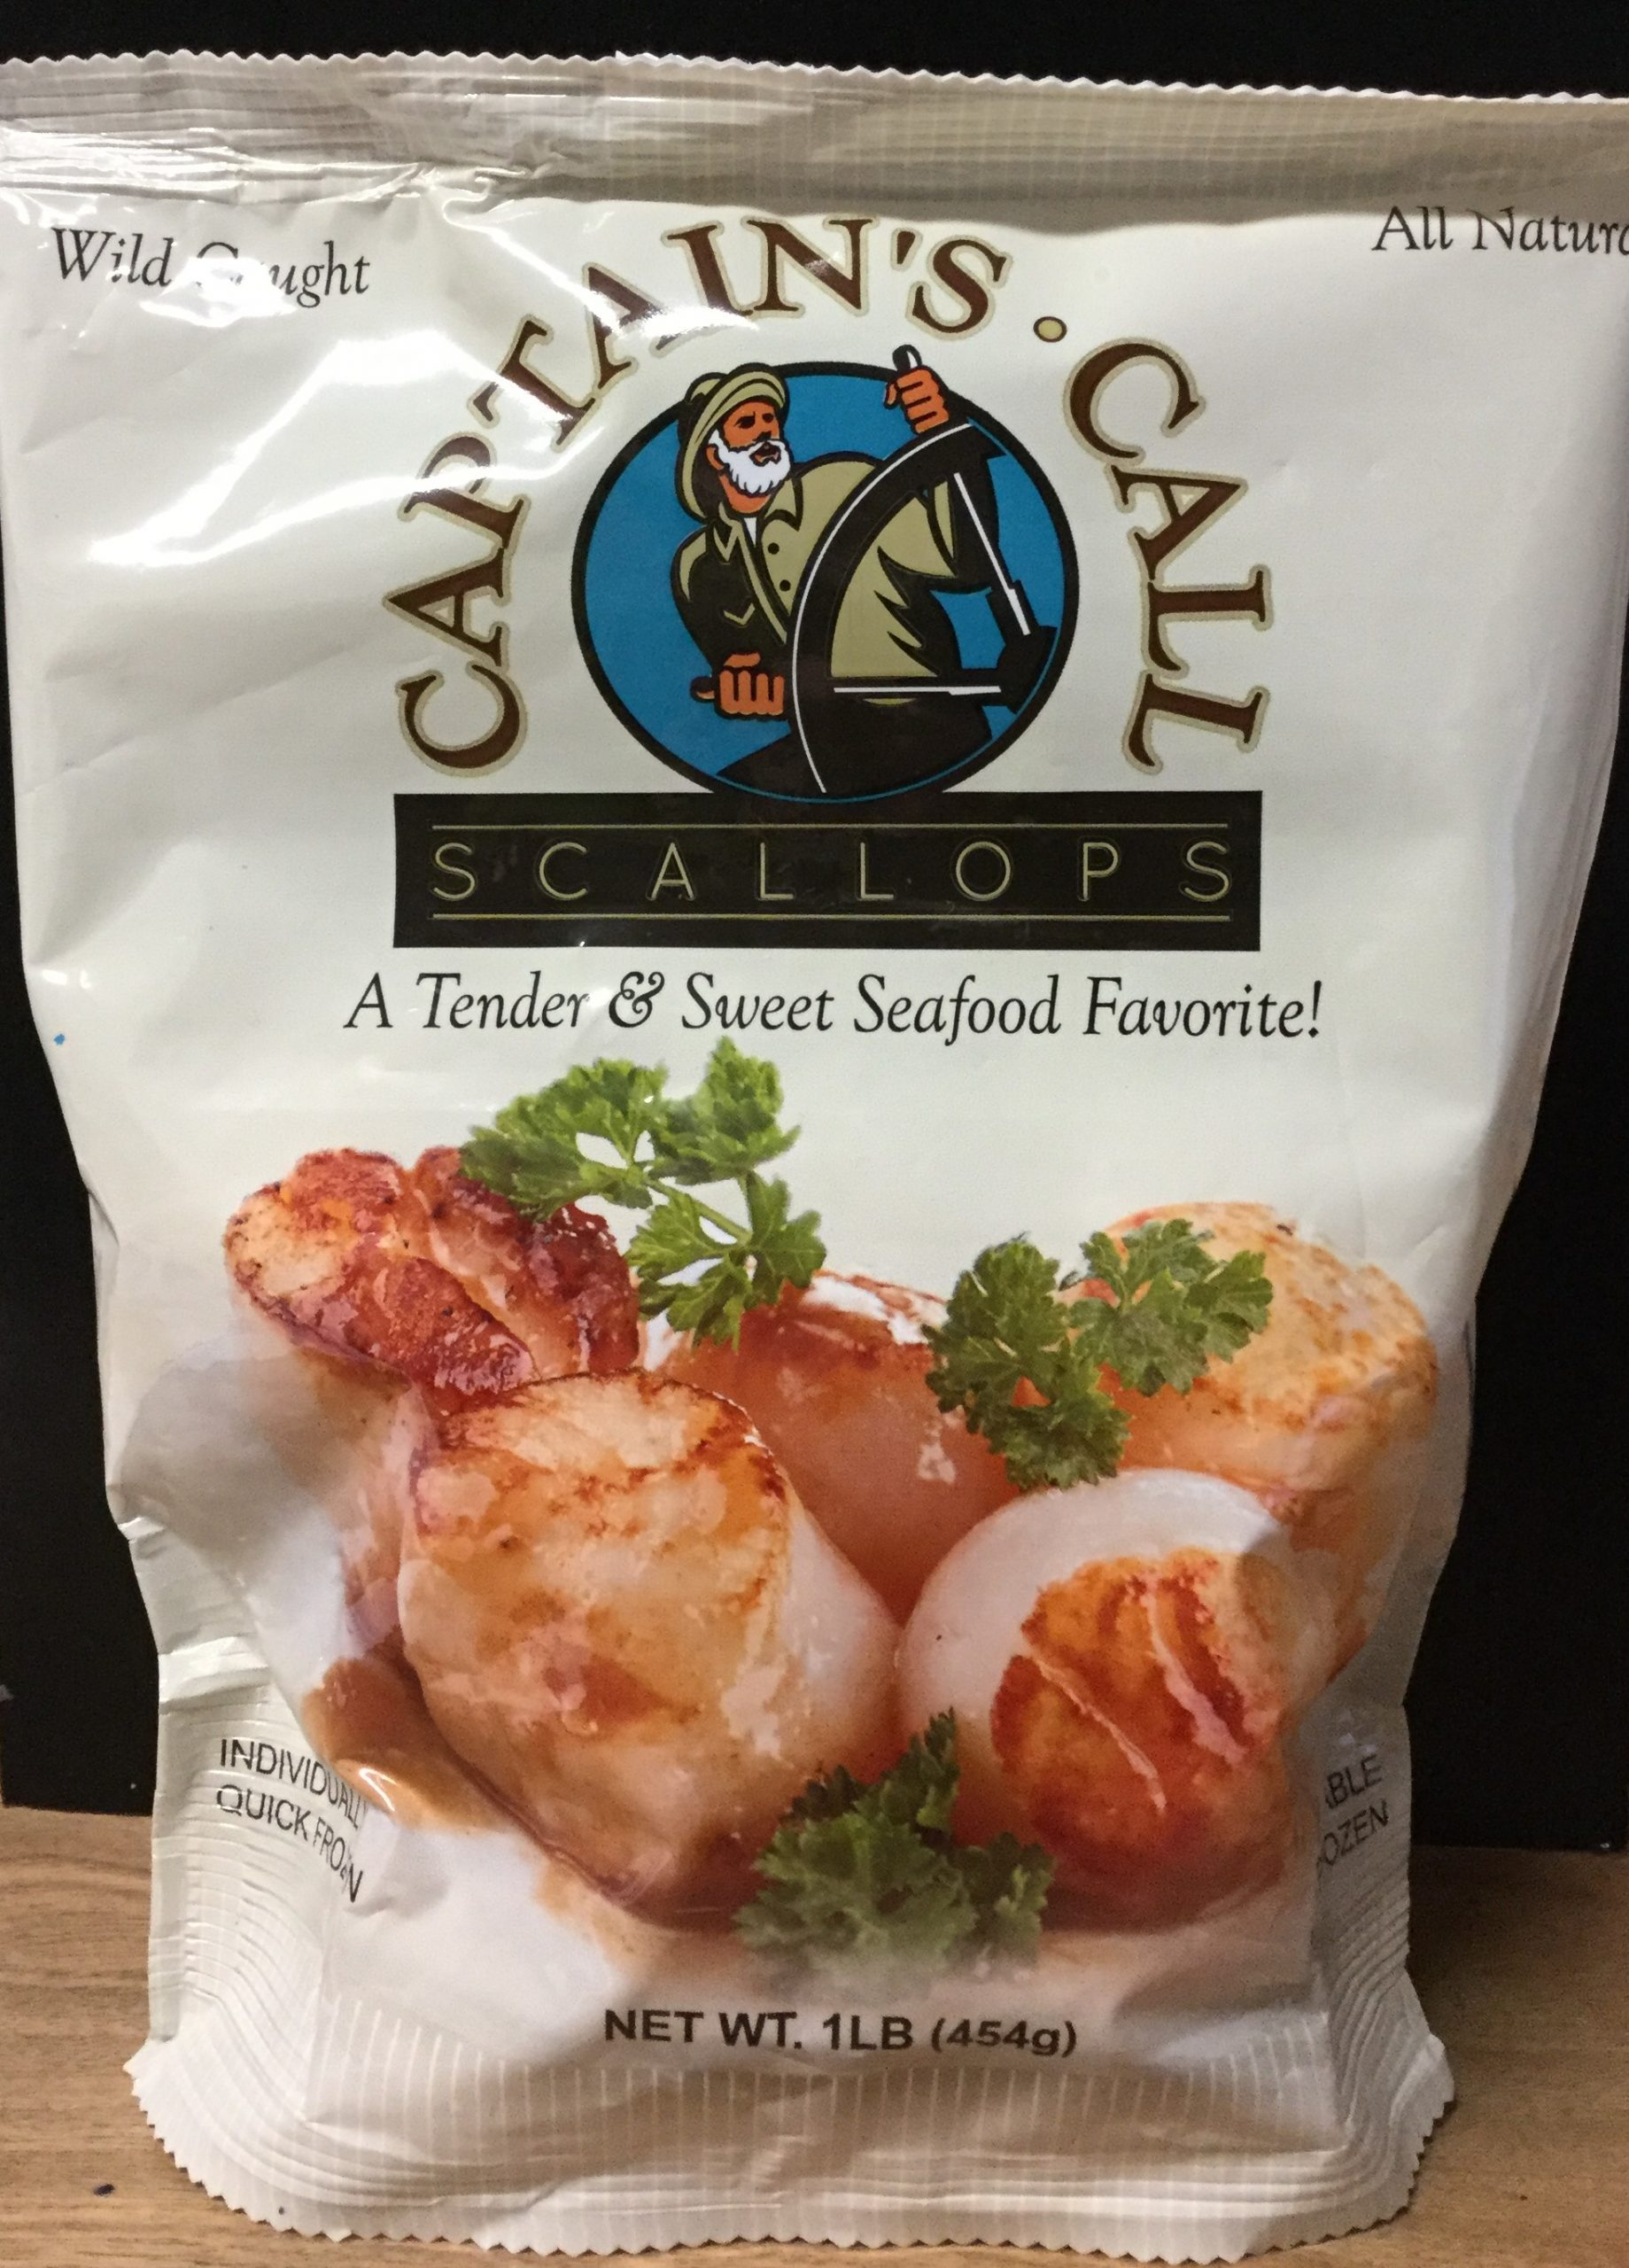 Scallops, Wild Caught in the USA